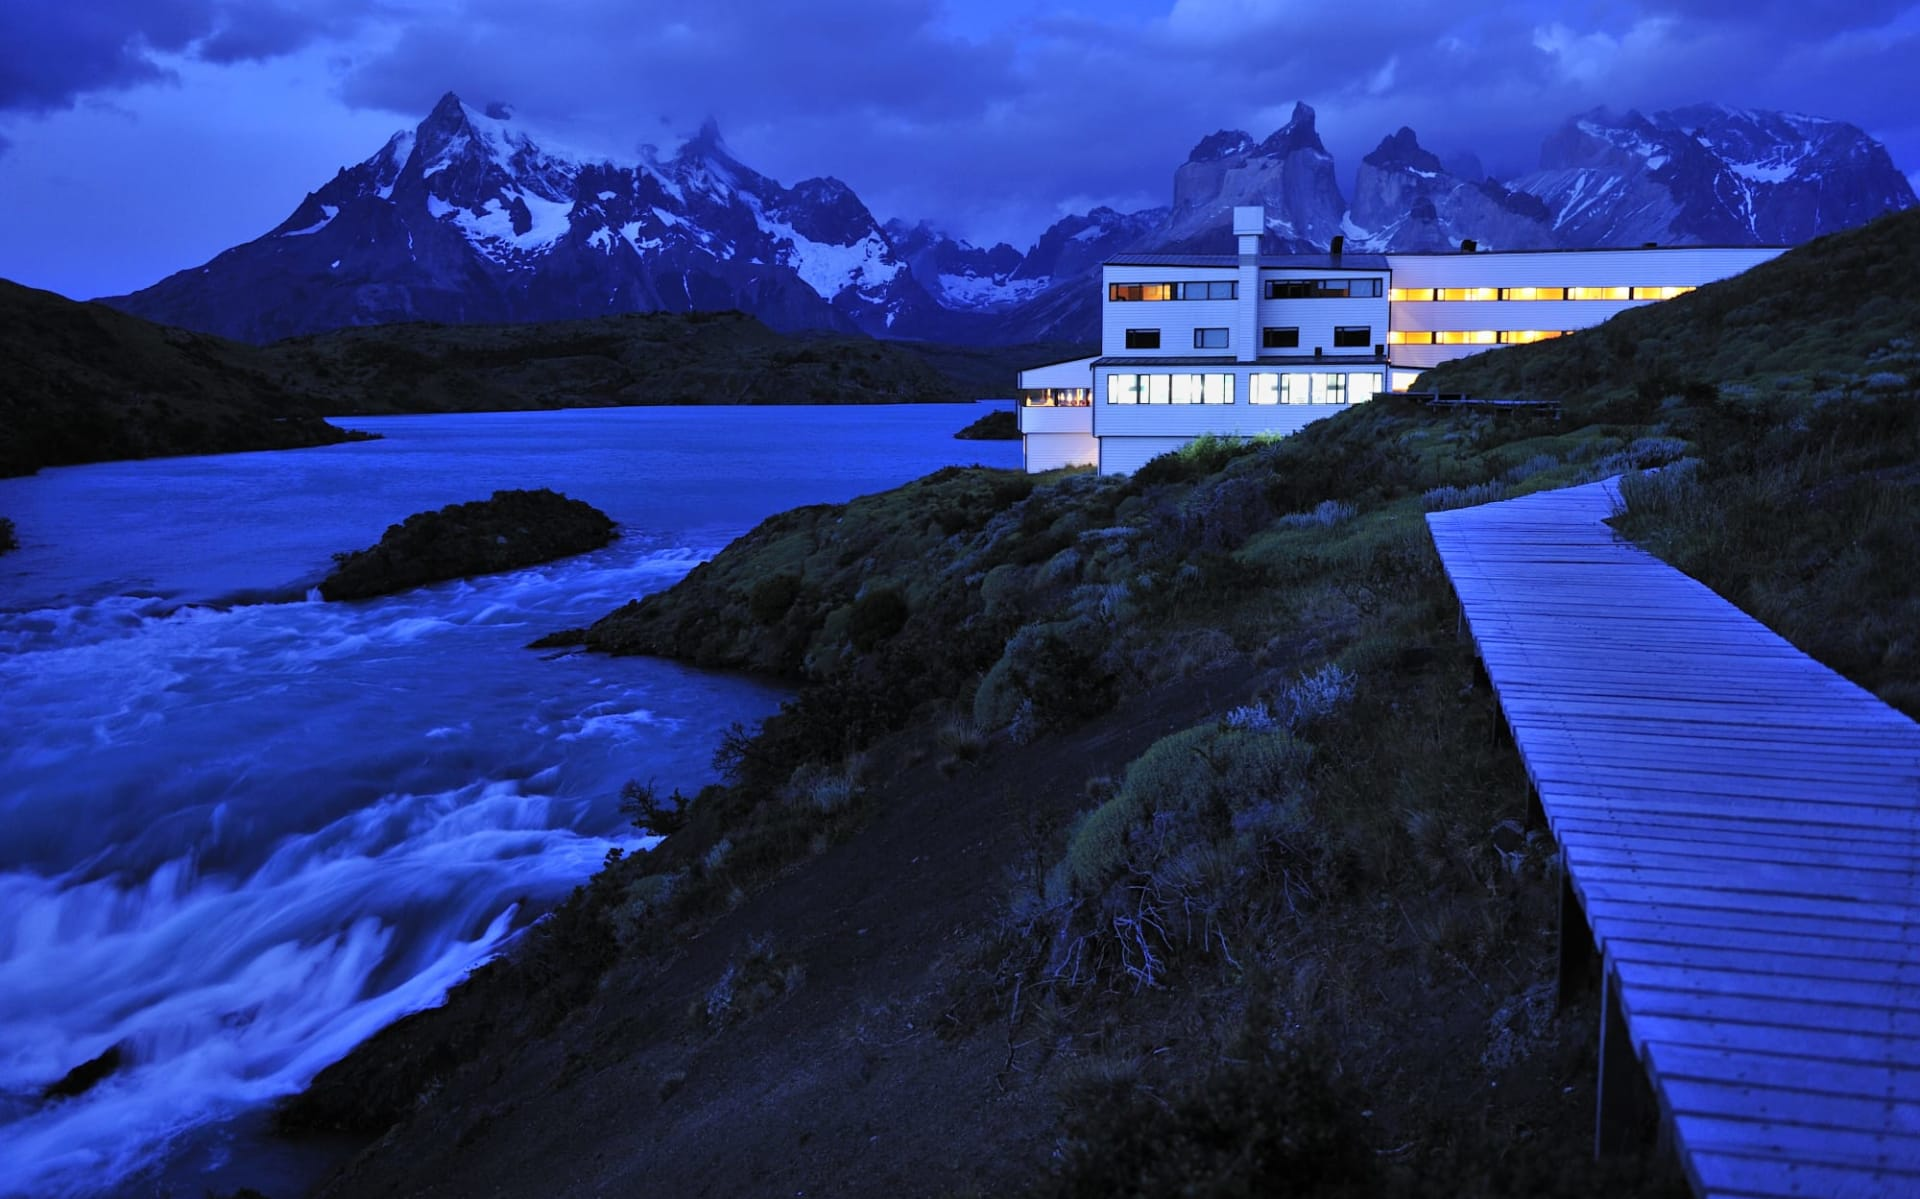 explora Patagonia in Torres del Paine Nationalpark: explora patagonia - Nacht